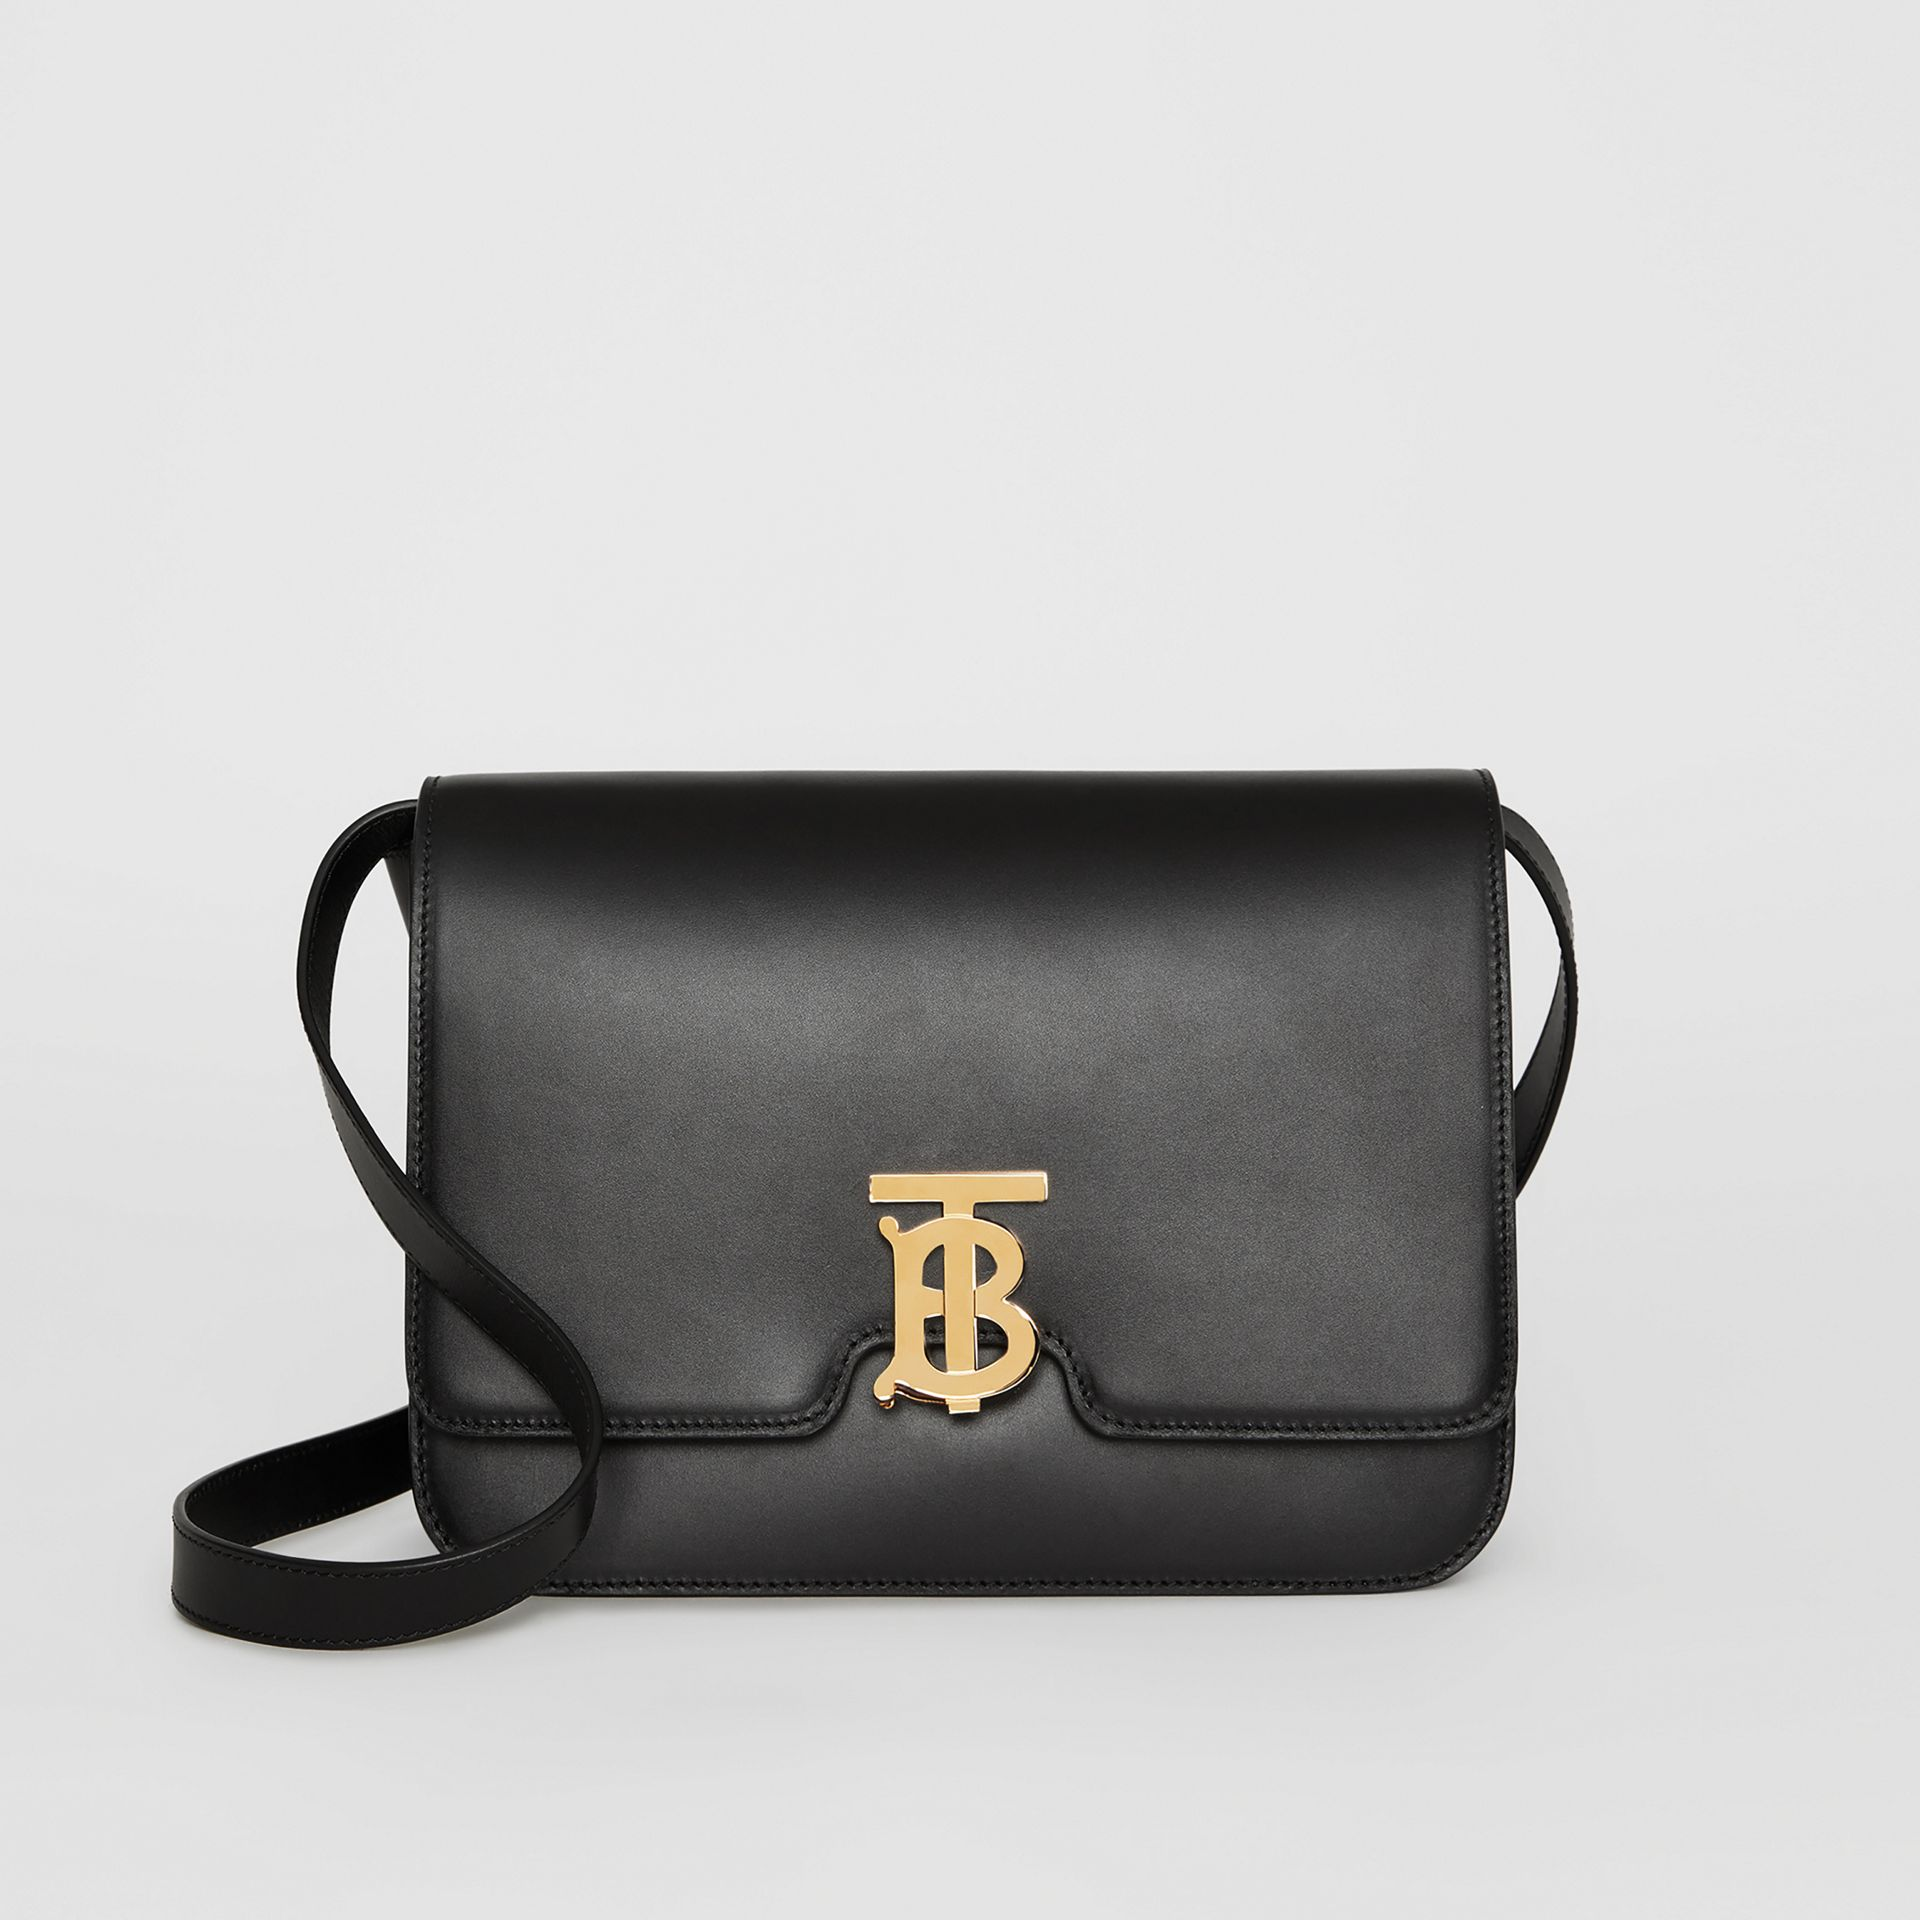 Túi Burberry TB Bag